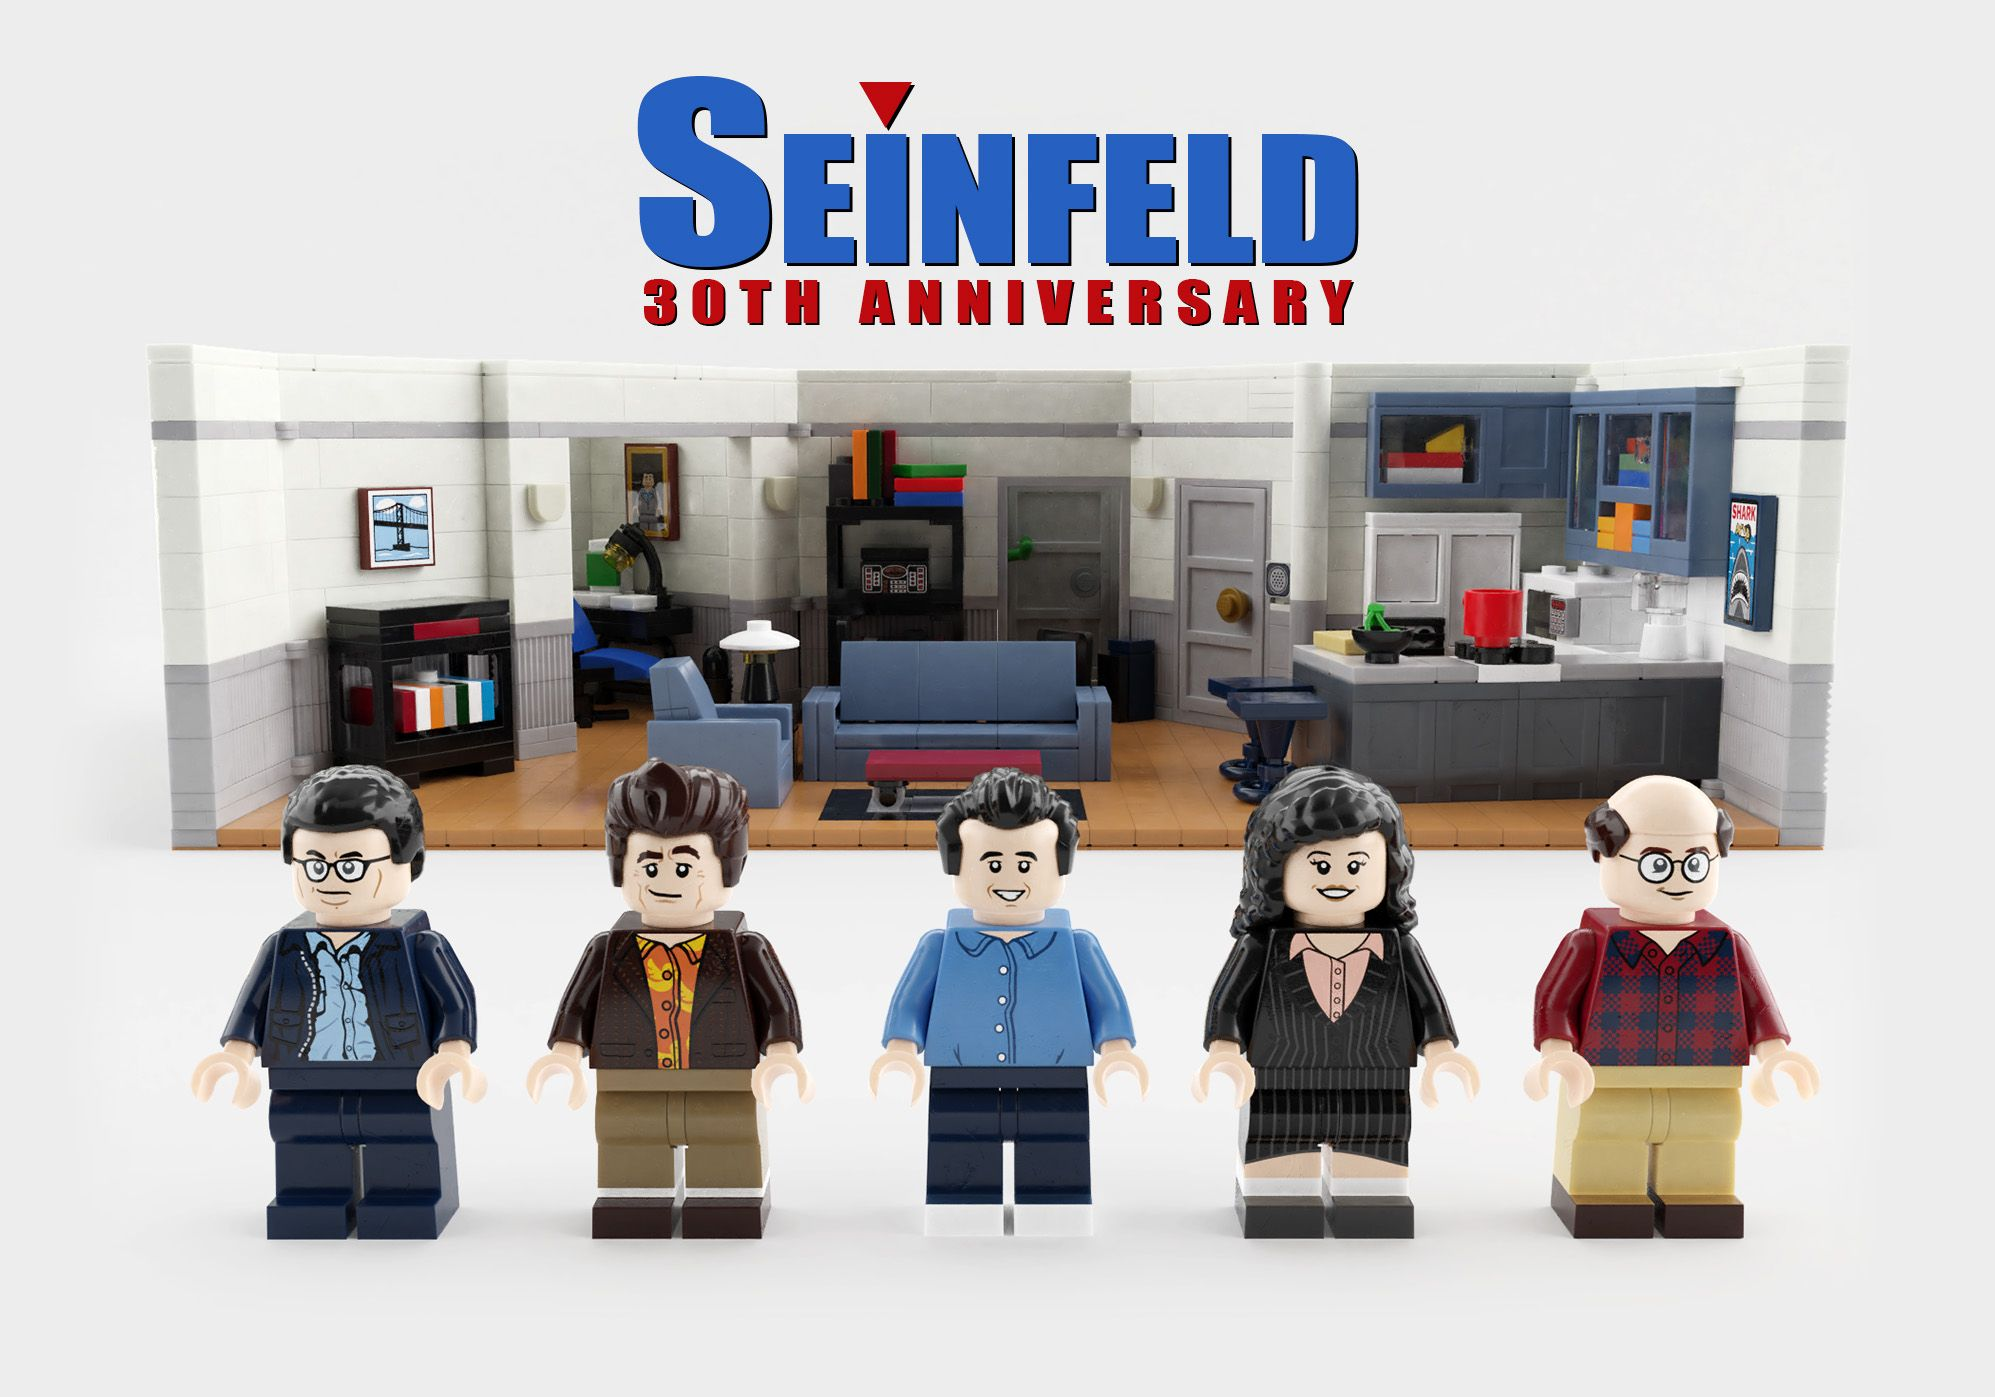 Seinfeld Lego Set With Images Lego Tv Seinfeld Gifts Seinfeld